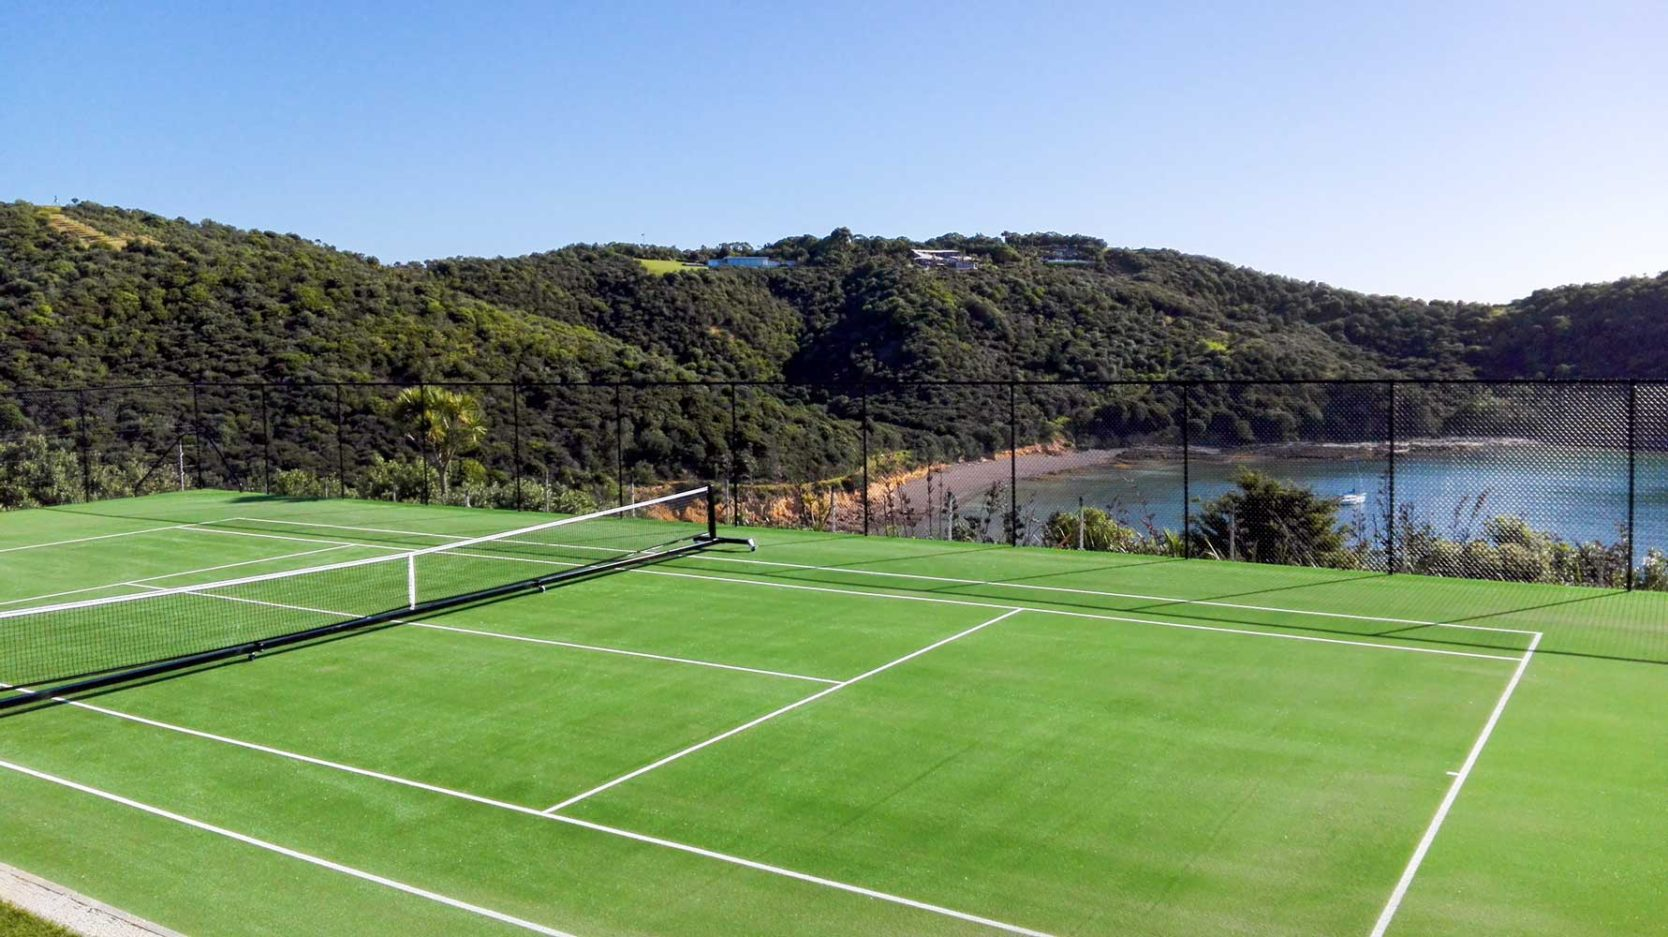 Waiheke Island Private Tennis Court synthetic turf